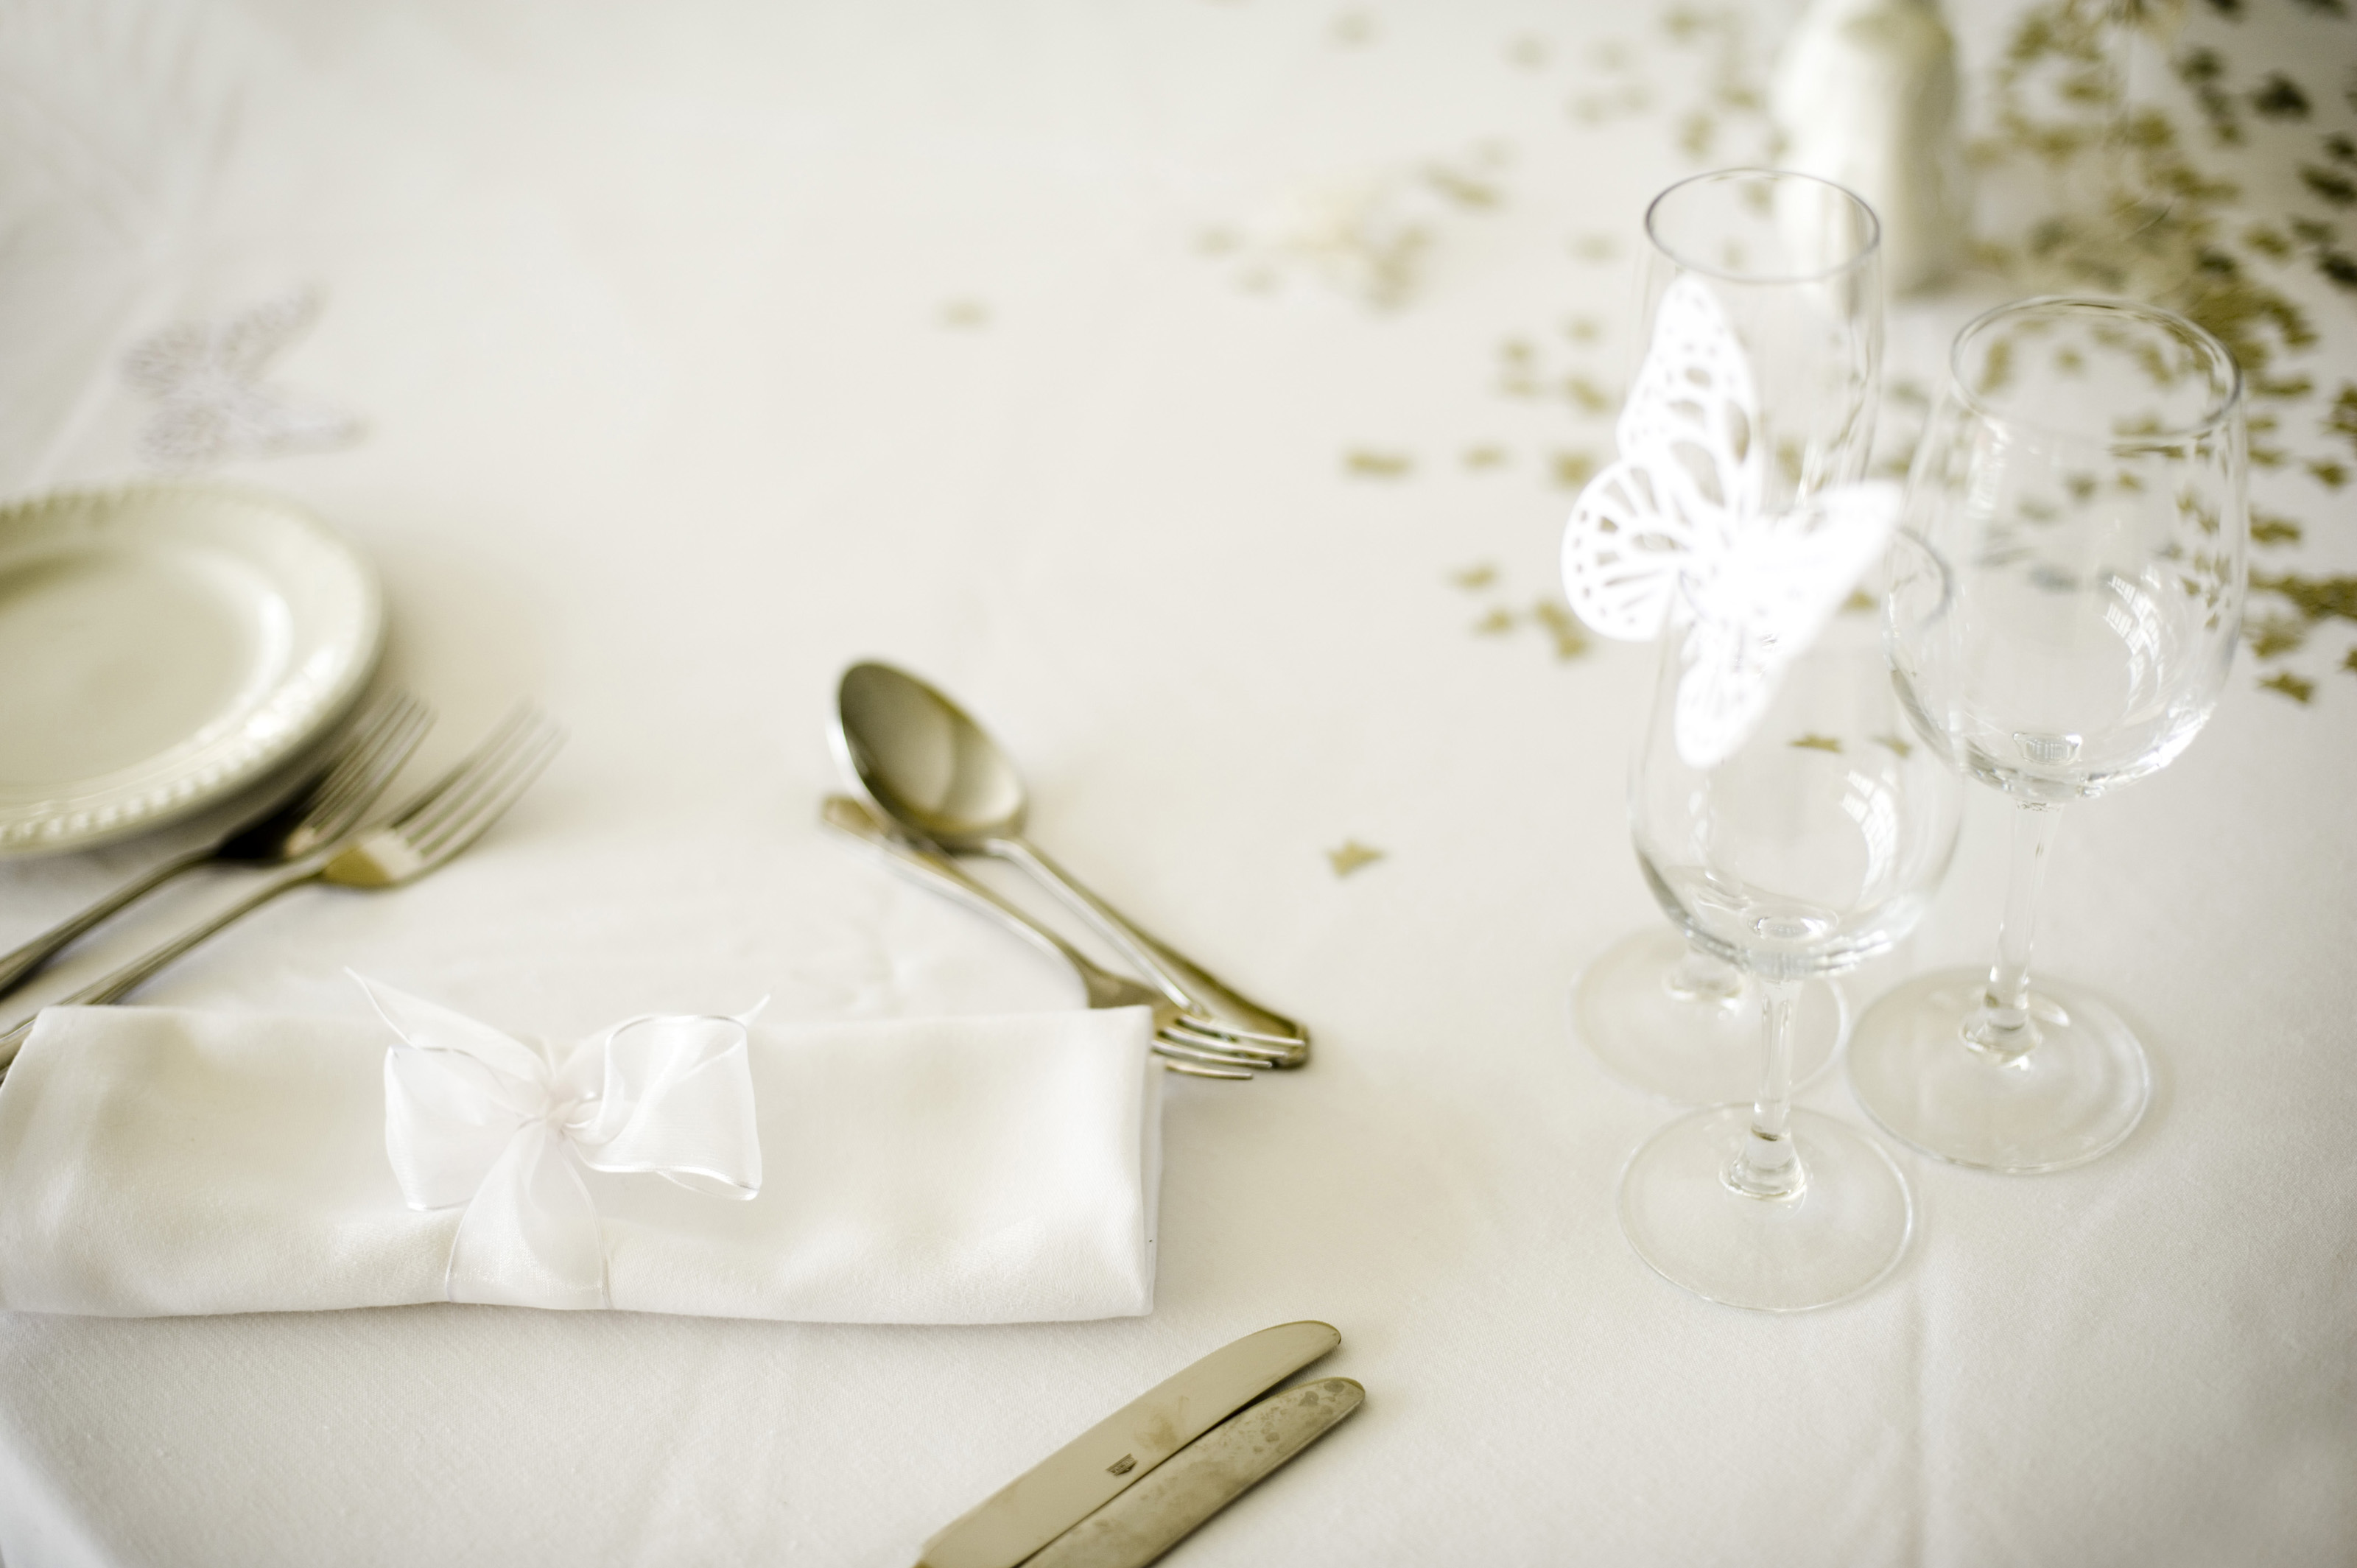 free image of place setting